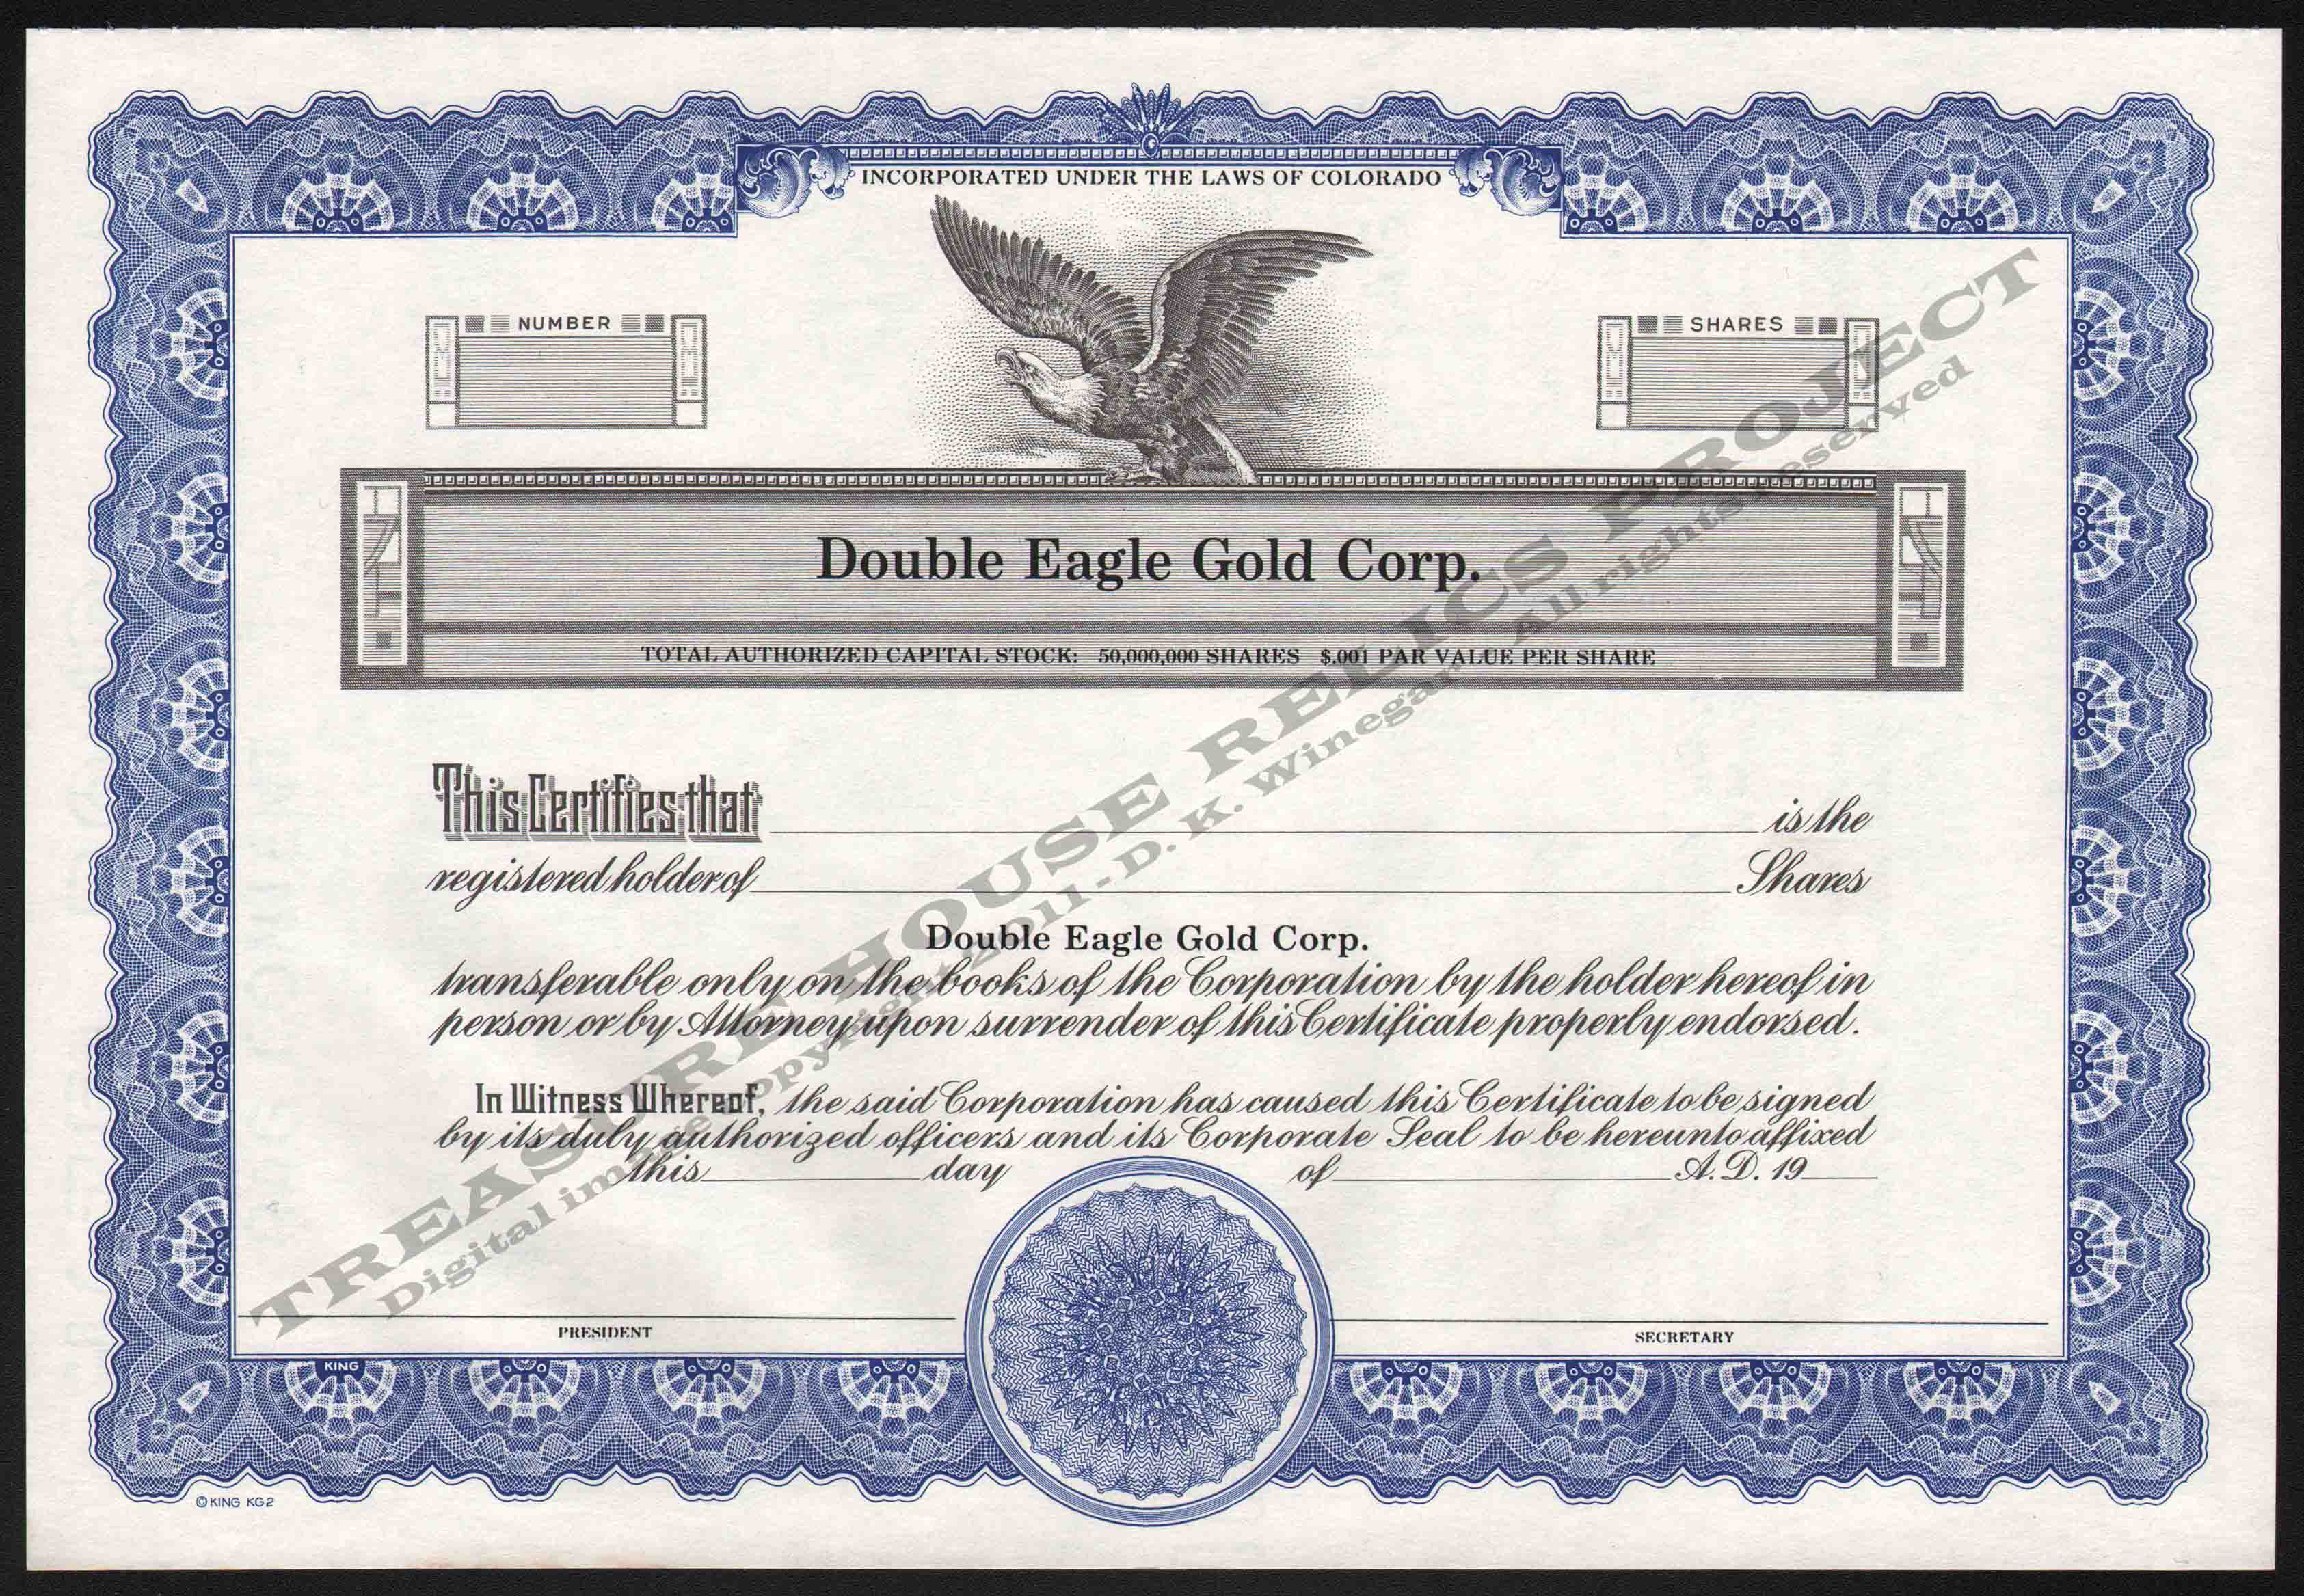 DOUBLE_EAGLE_GOLD_CORP_NNPS_300_emboss.jpg